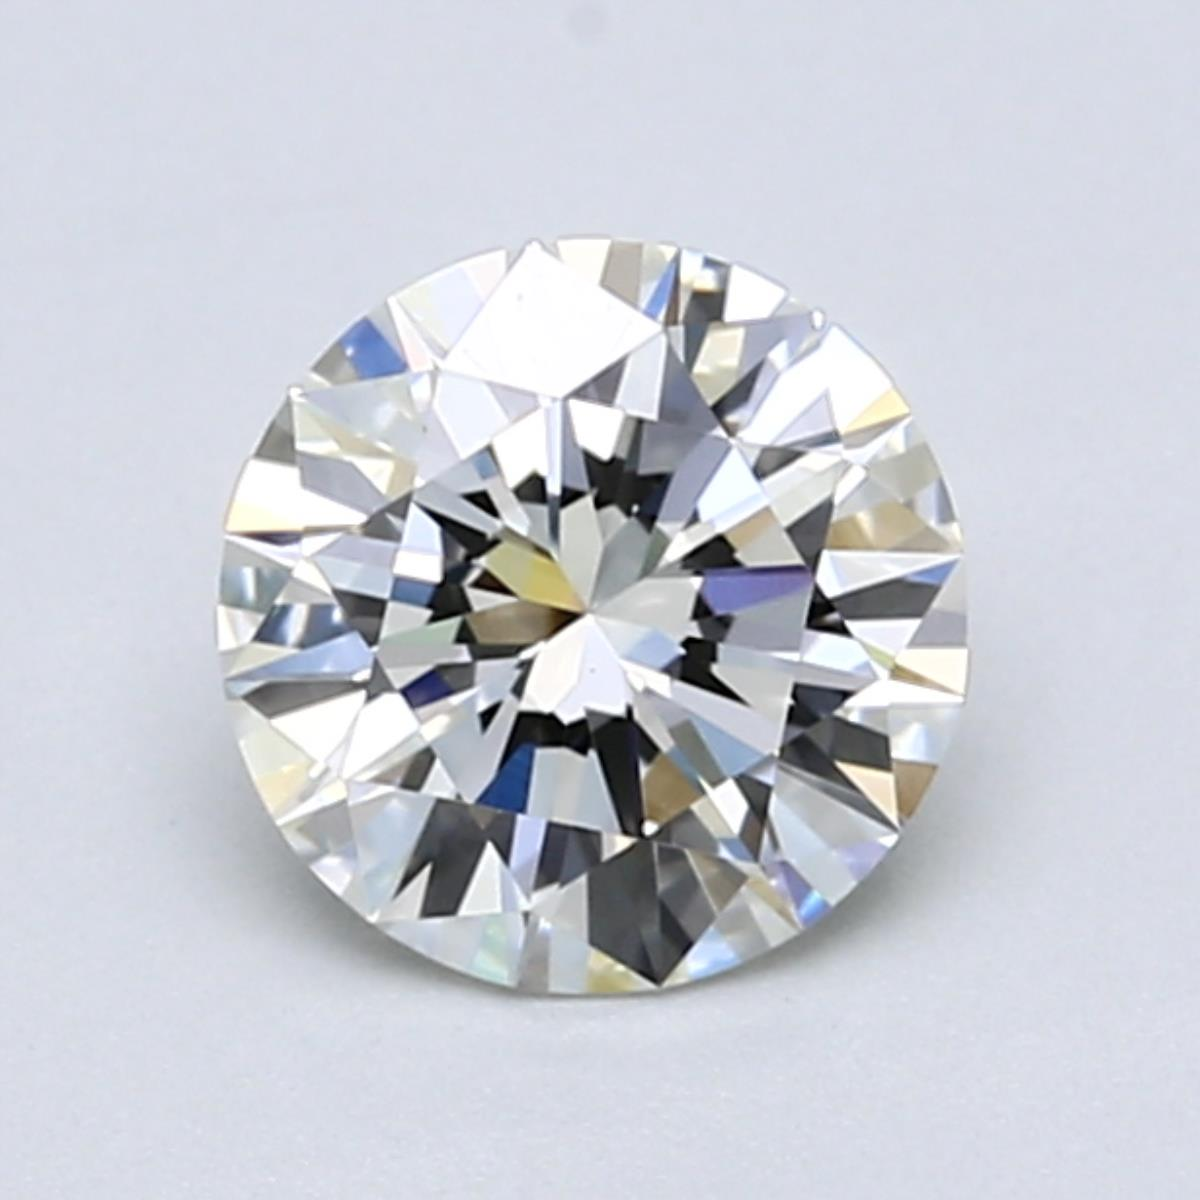 1.07 carat Round Diamond, Ideal cut, graded by the GIA laboratories.